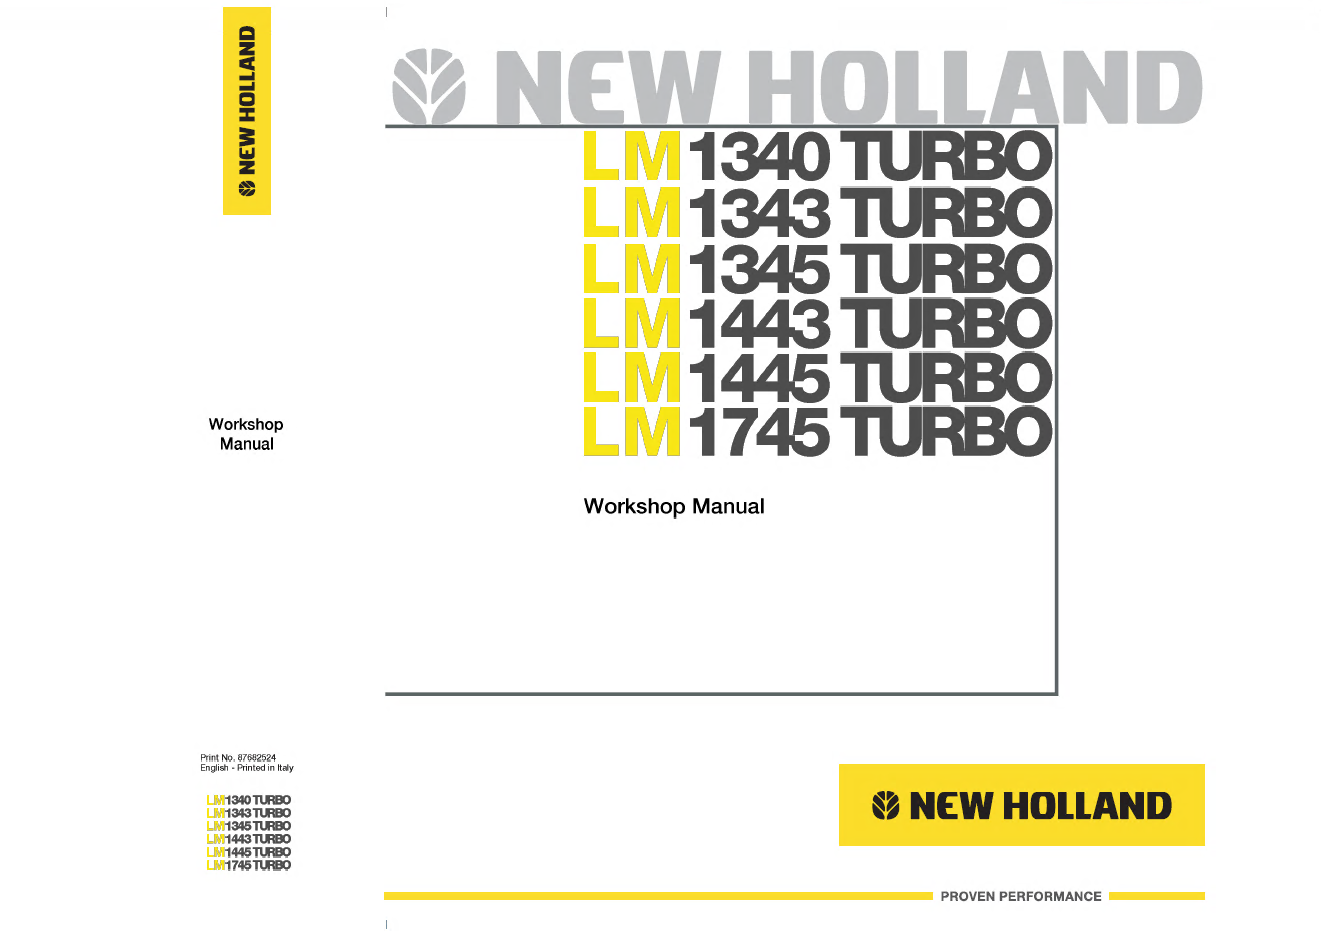 repair manual New Holland LM1340 LM1343 LM1345 LM1443 LM1445 LM1745 TURBO  Telehlander PDF